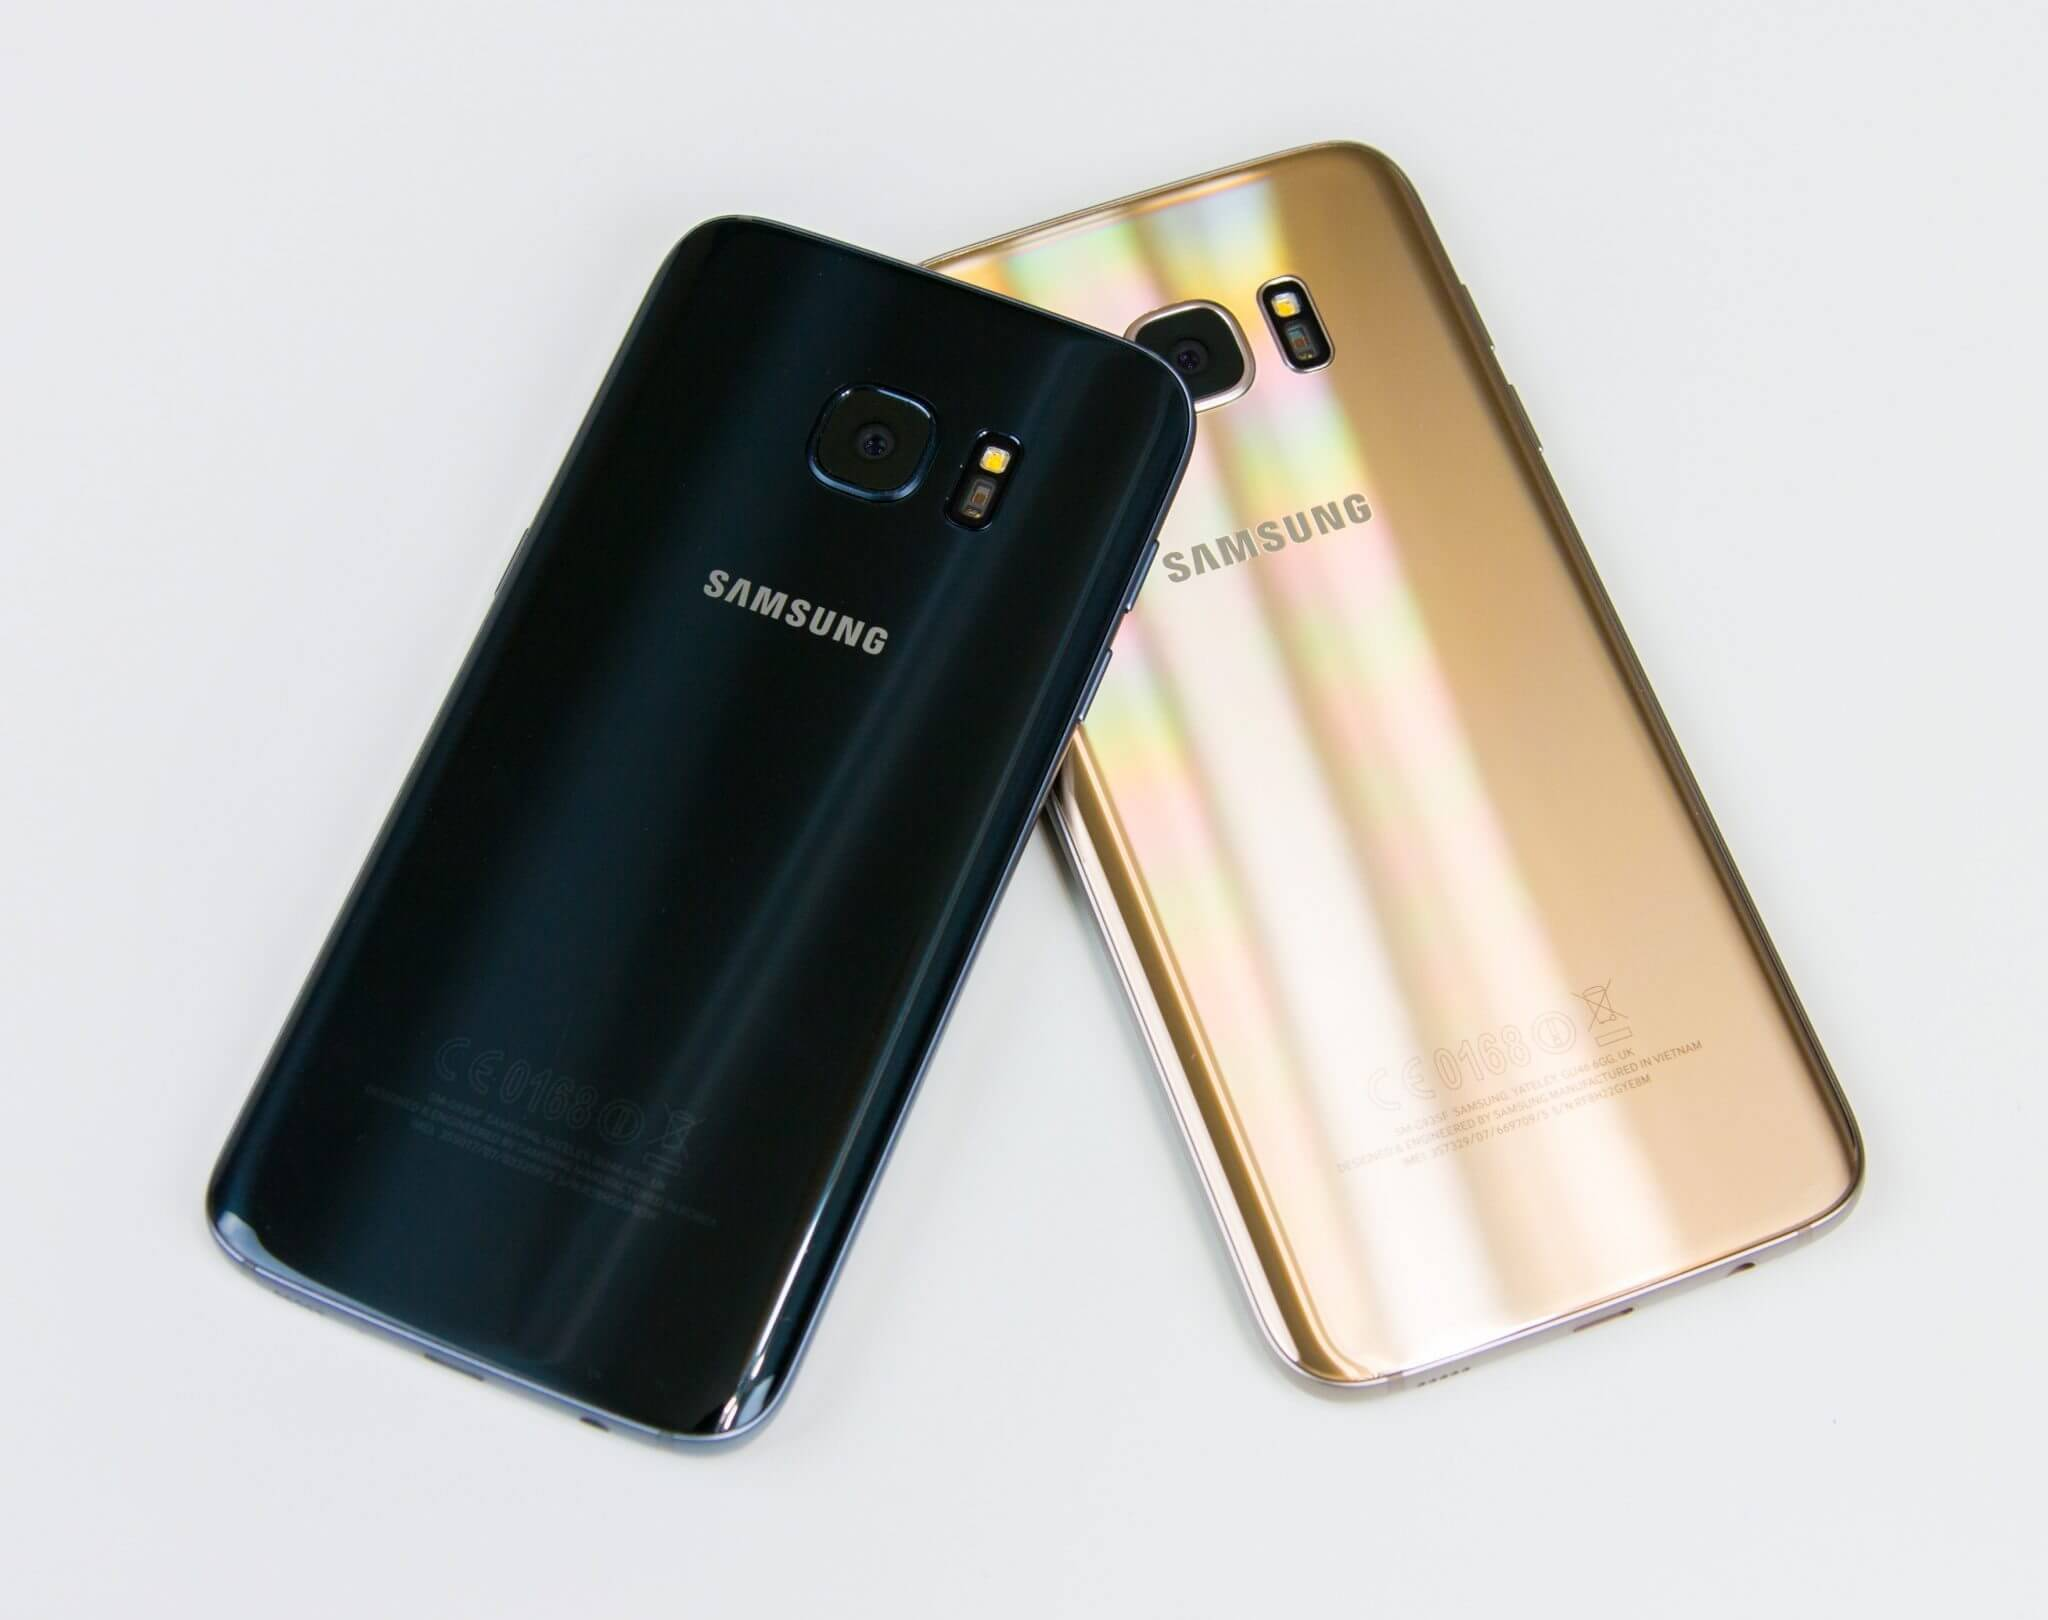 Samsung Galaxy S7 vs S7 Edge 11 - Samsung inicia o programa beta do Android 7.0 Nougat para o Galaxy S7/S7 Edge